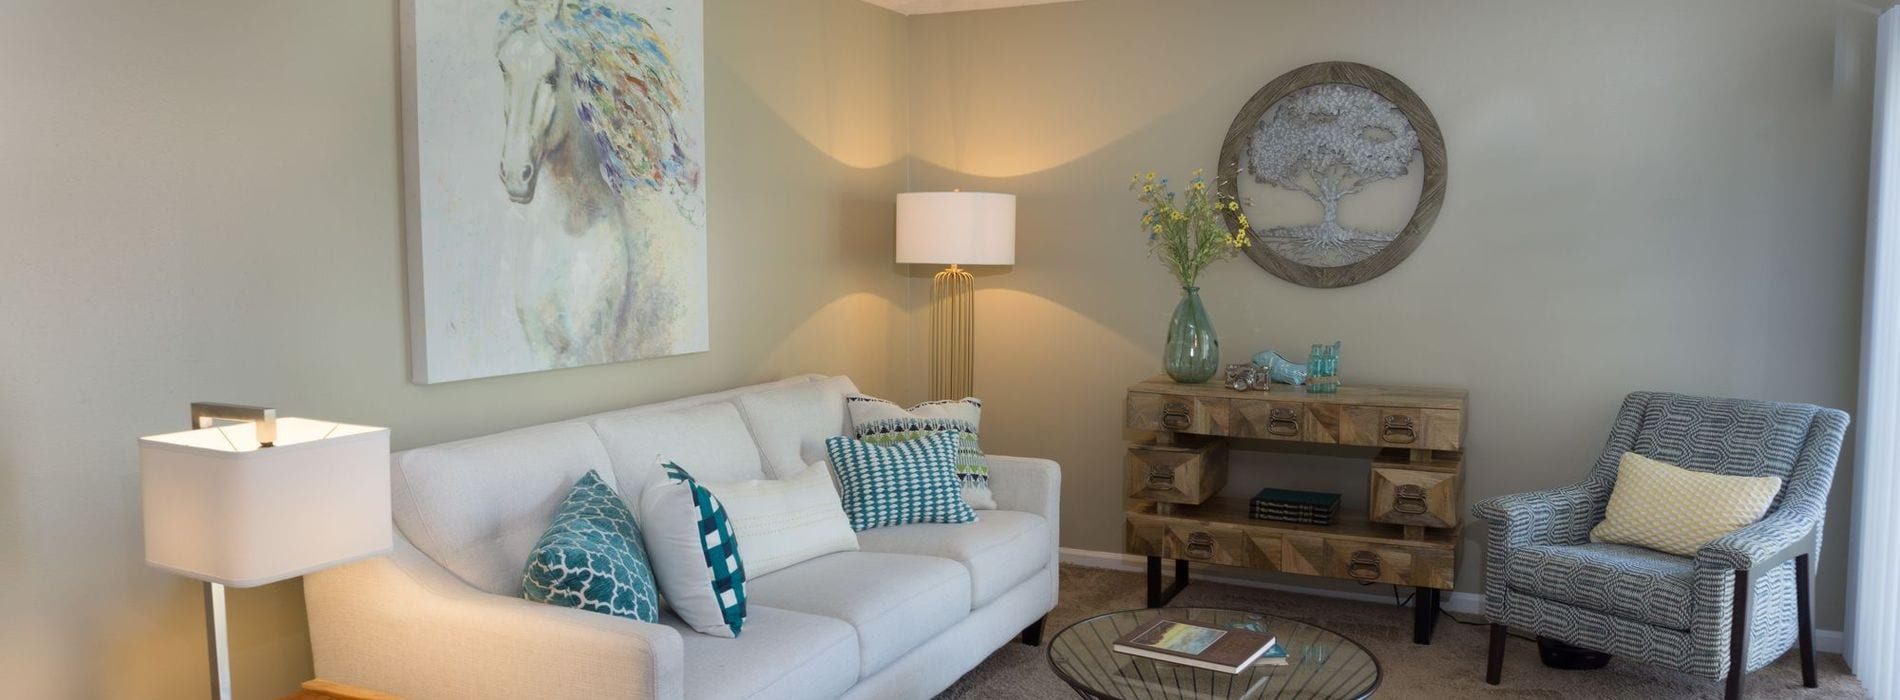 Apartments For Rent In Lexington KY